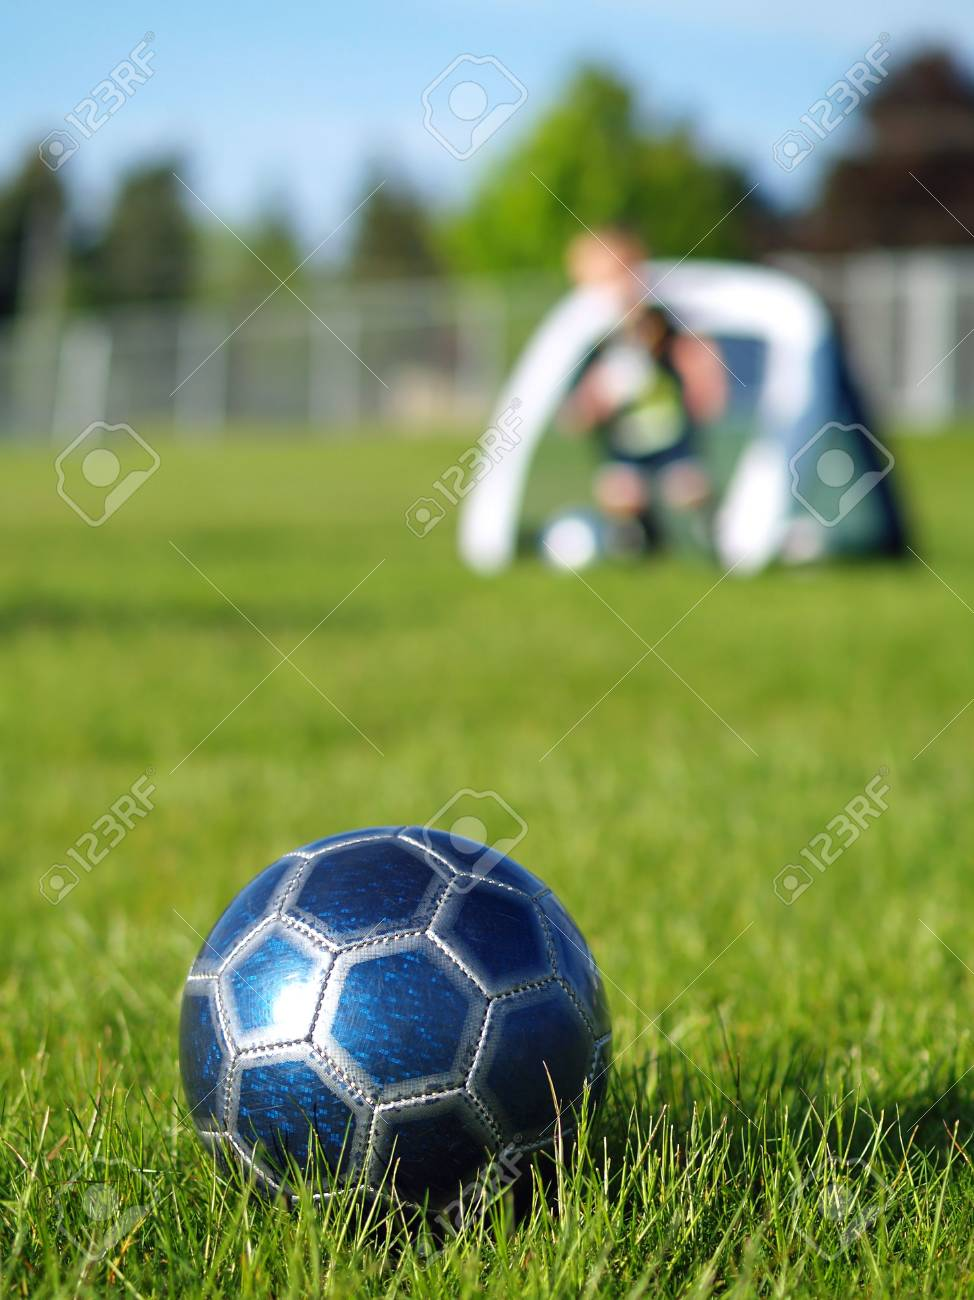 A blue soccer ball on field of green grass on a sunny day with kids in the background. Stock Photo - 5000247